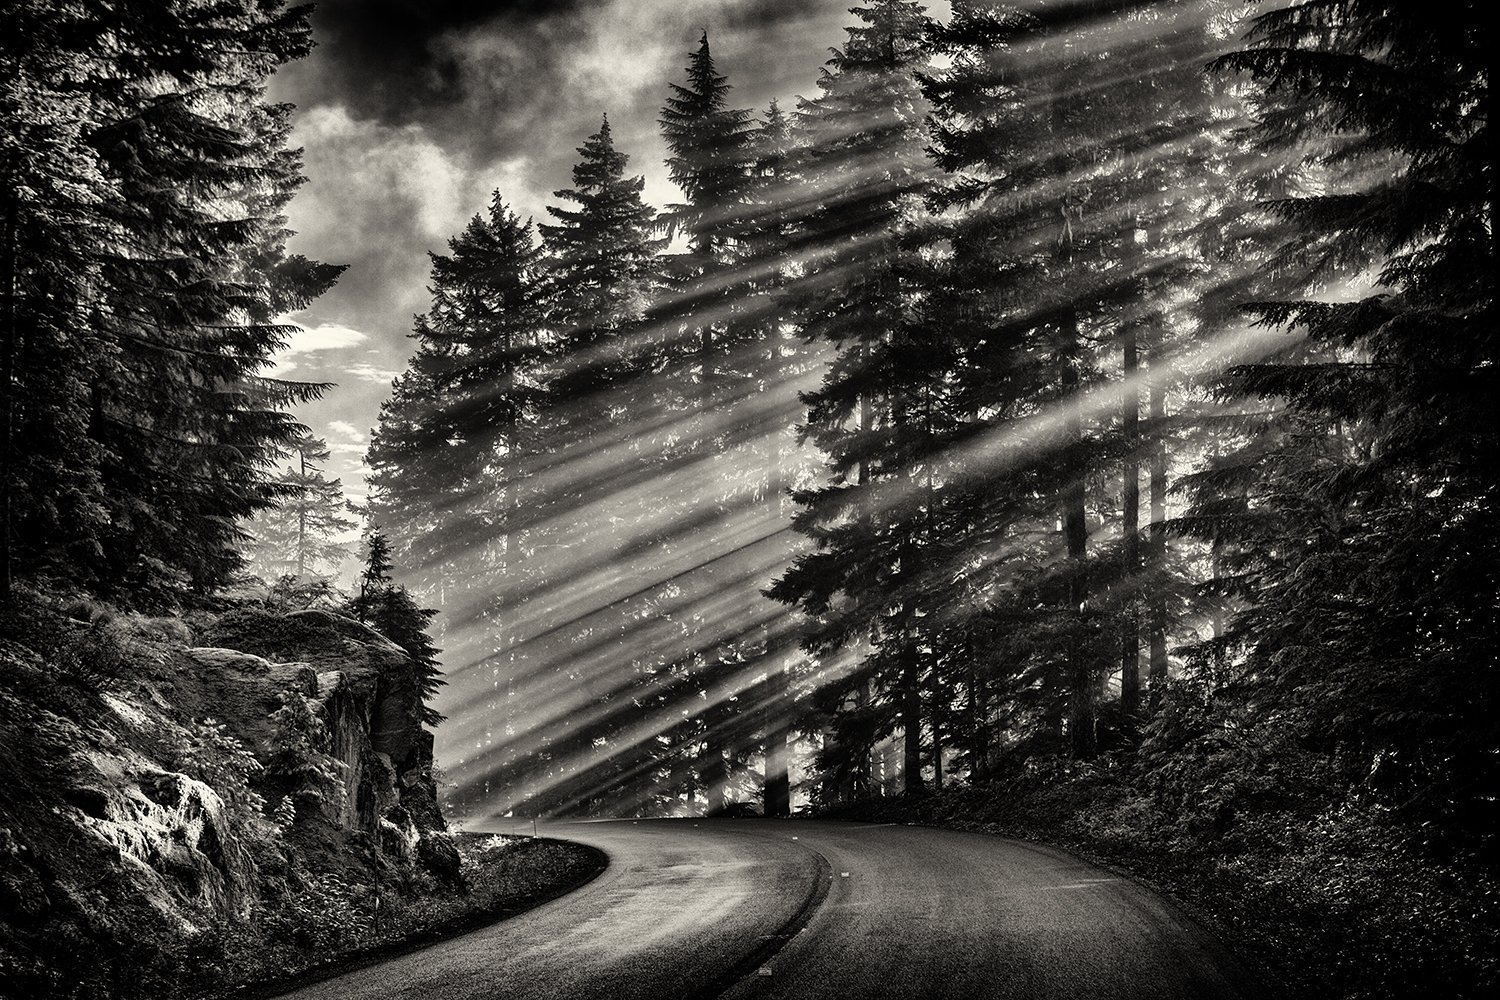 Fine art black and white photography landscape photography black and white mountain road monochromatic nature pine tree mount rainier national park